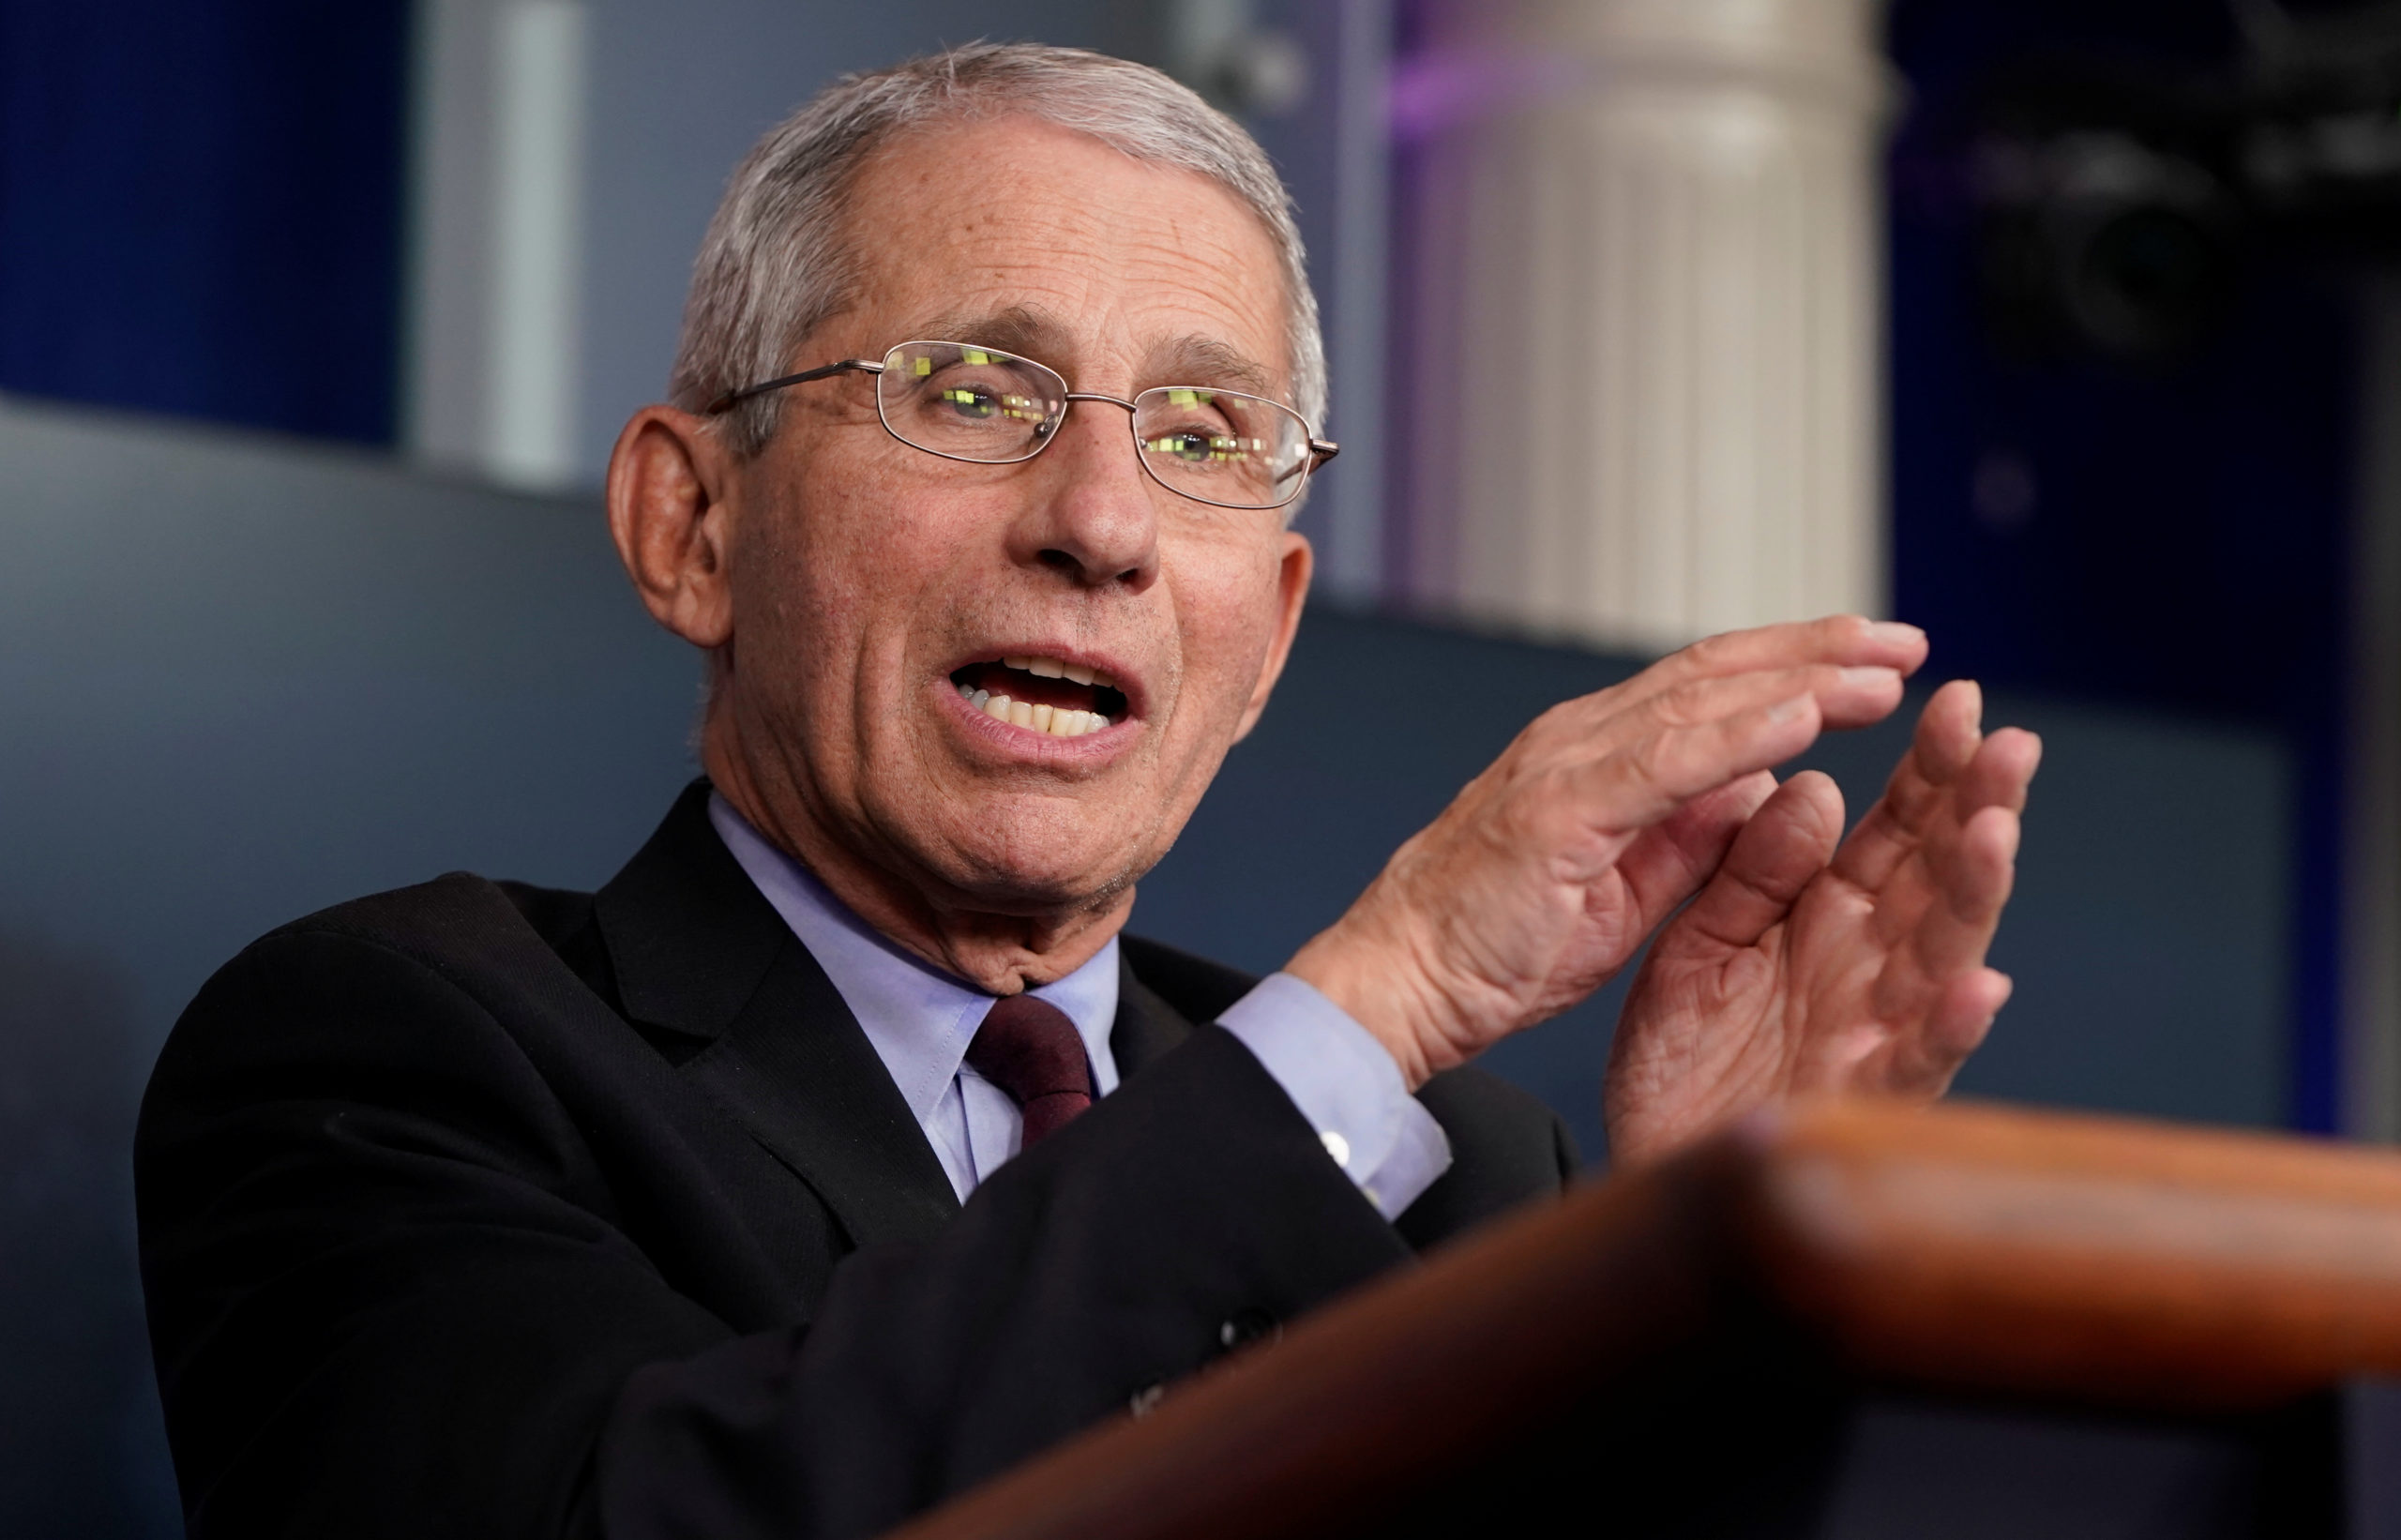 Dr. Anthony Fauci carries Jesuit tenets 'precision of thought ...